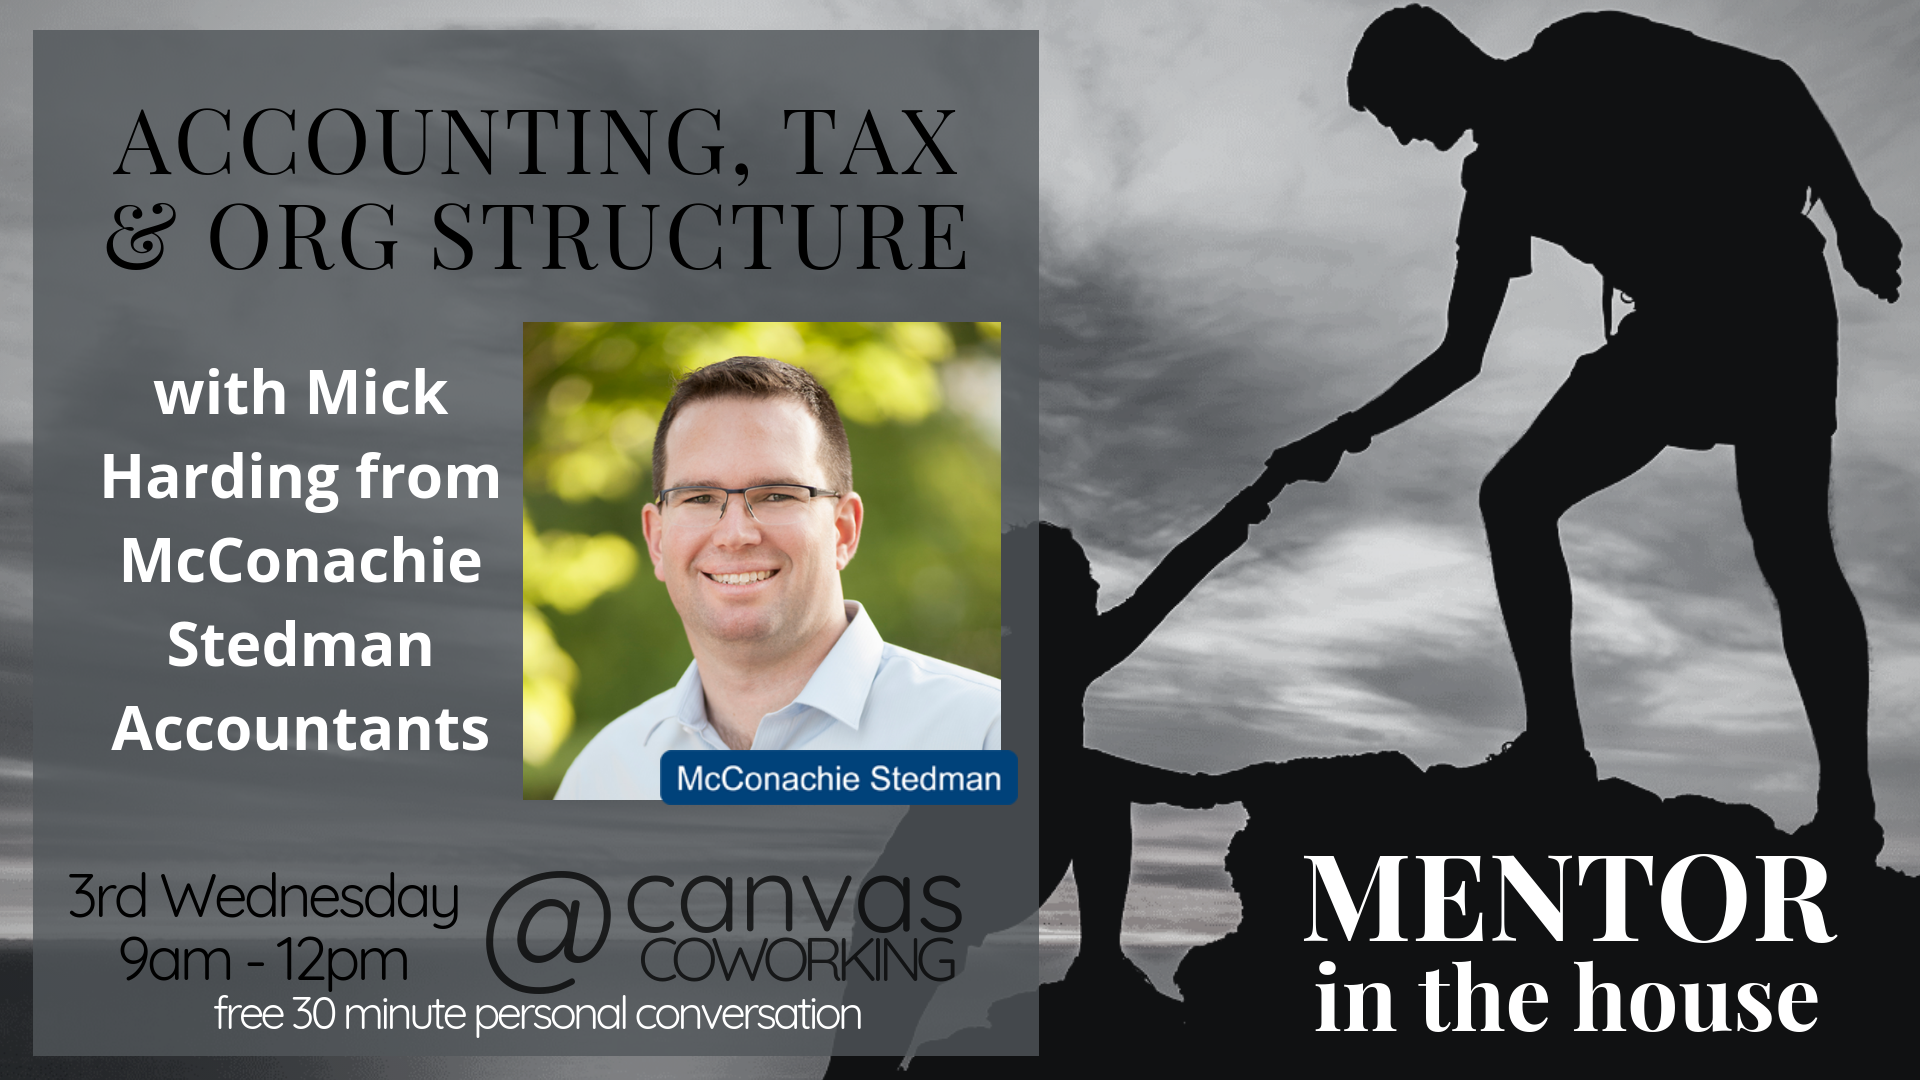 Mentor in the House - Mick Harding - Accounting, Taxation and Organisational Structure - Canvas Coworking - Toowoomba - 3rd Wednesday of the month - Free